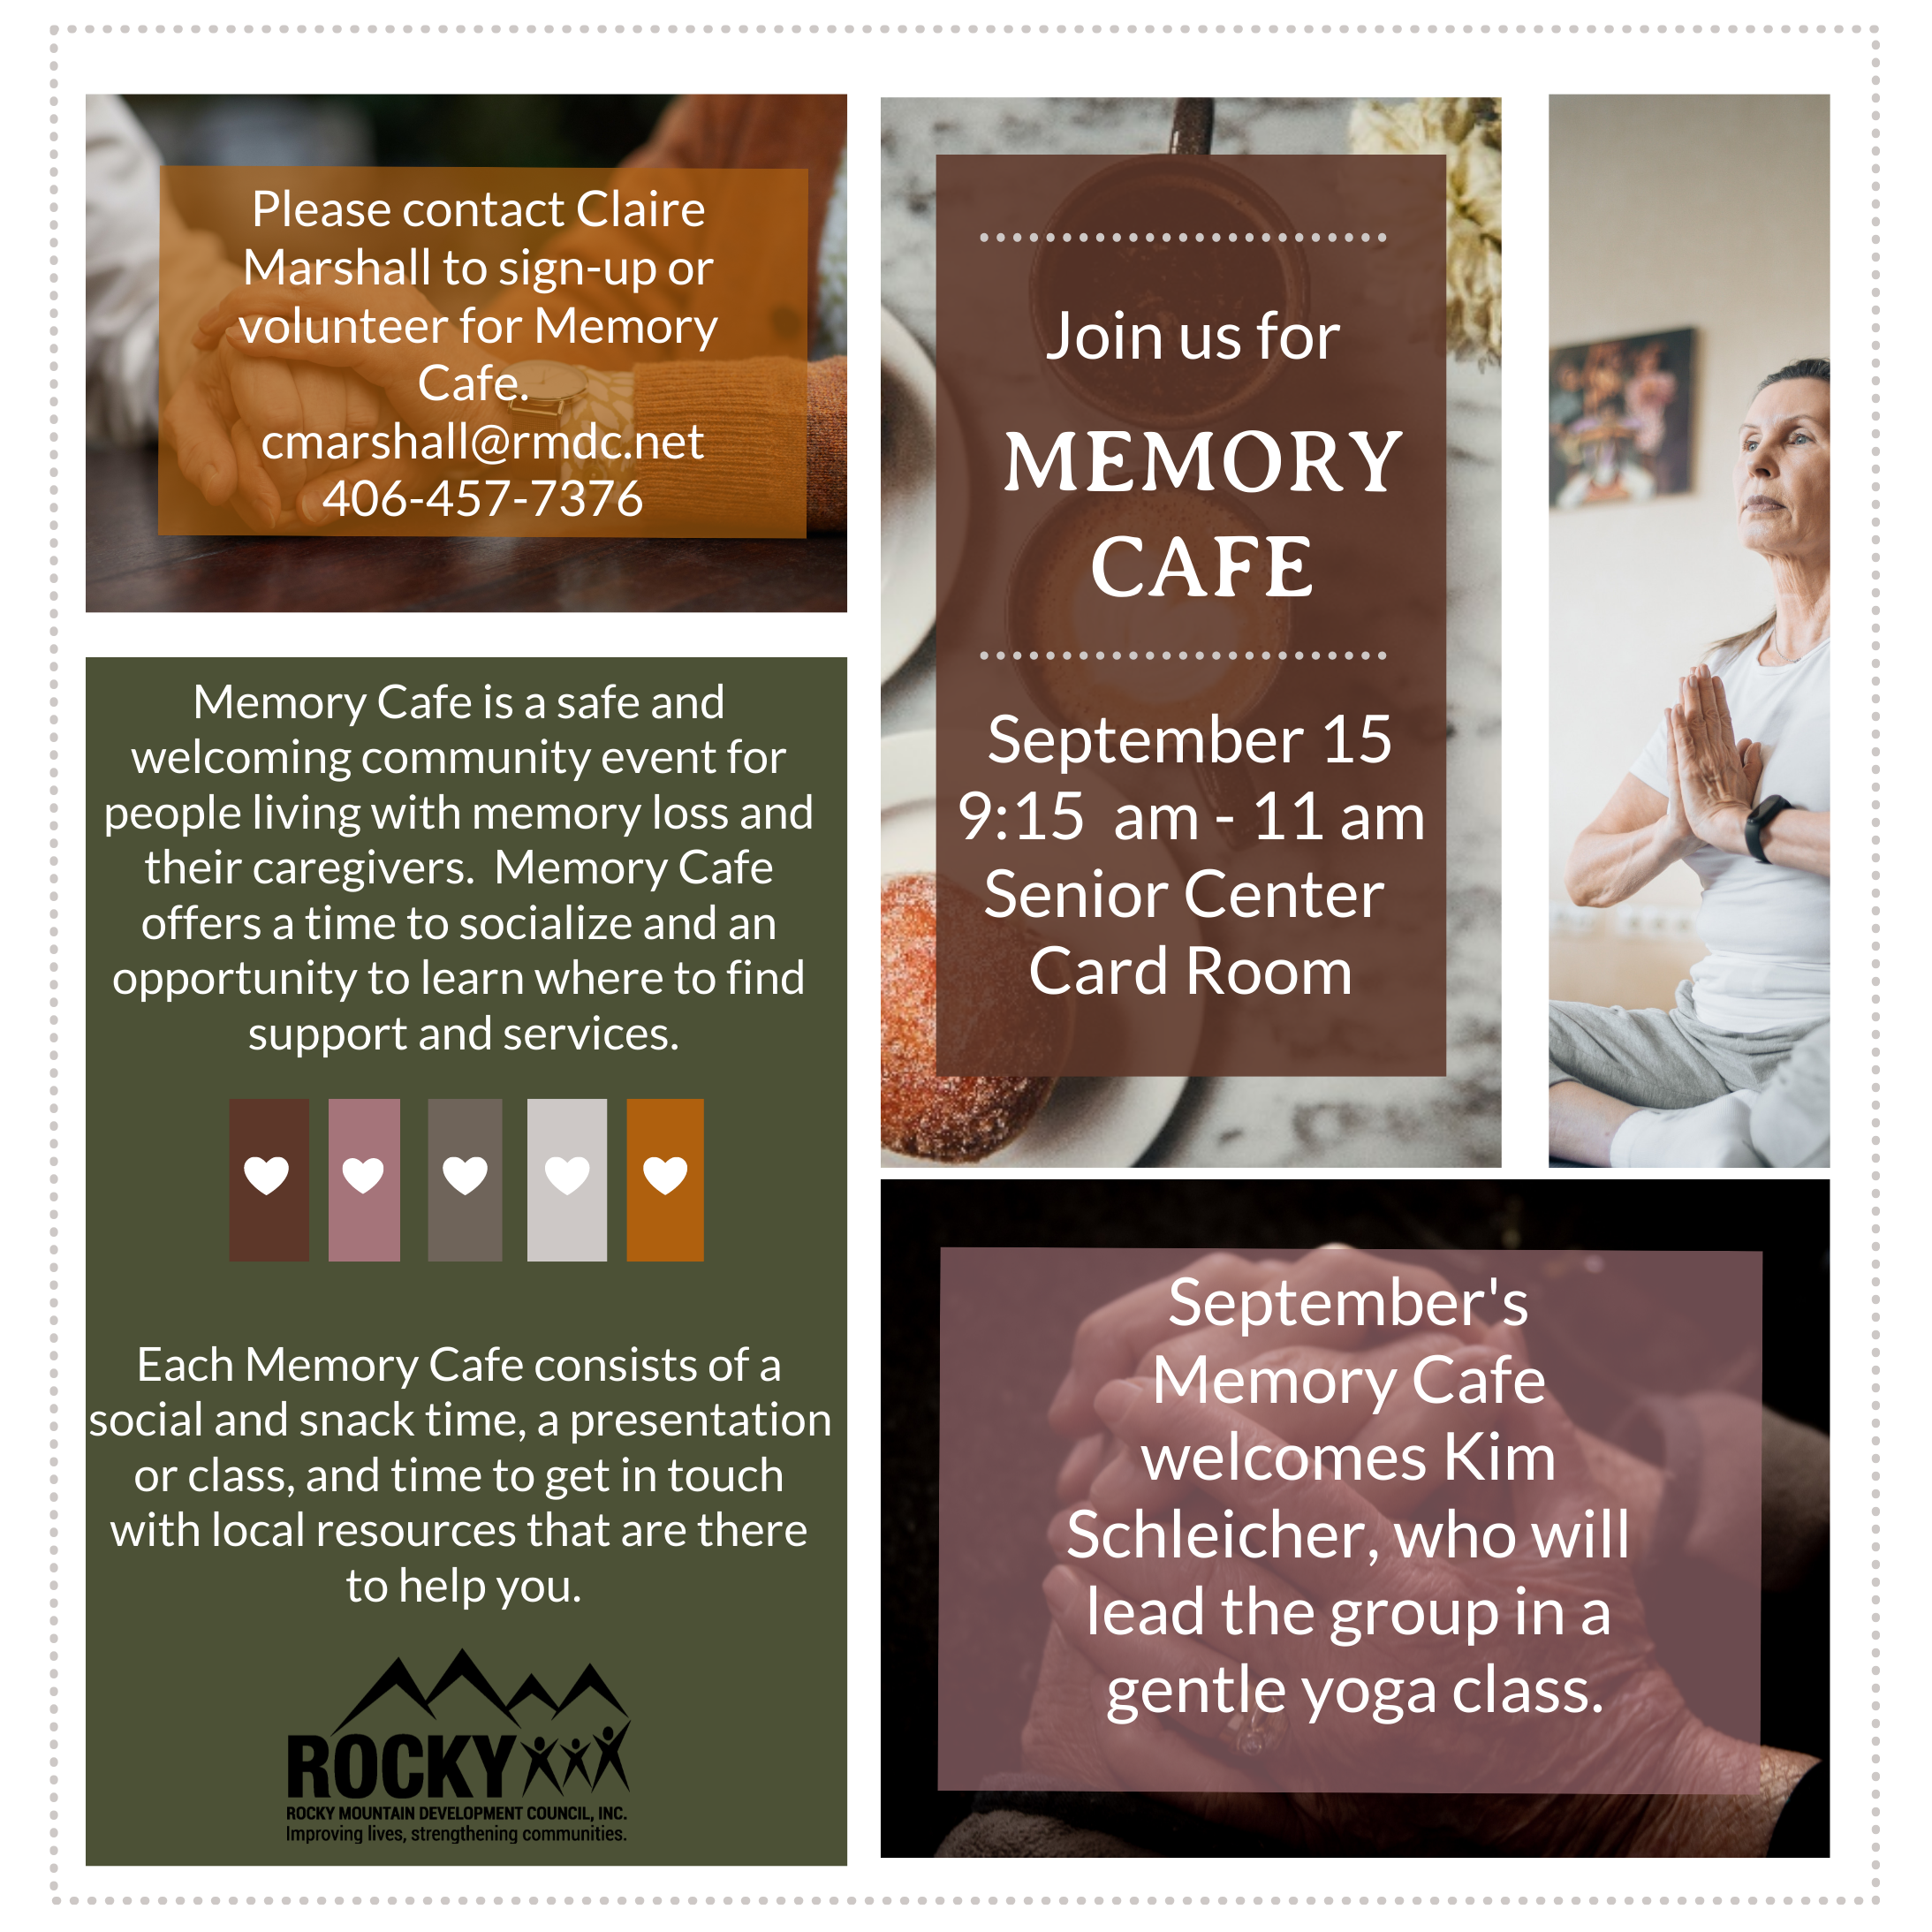 Memory Cafe is a safe and welcoming community event for people living with memory loss and their caregivers.